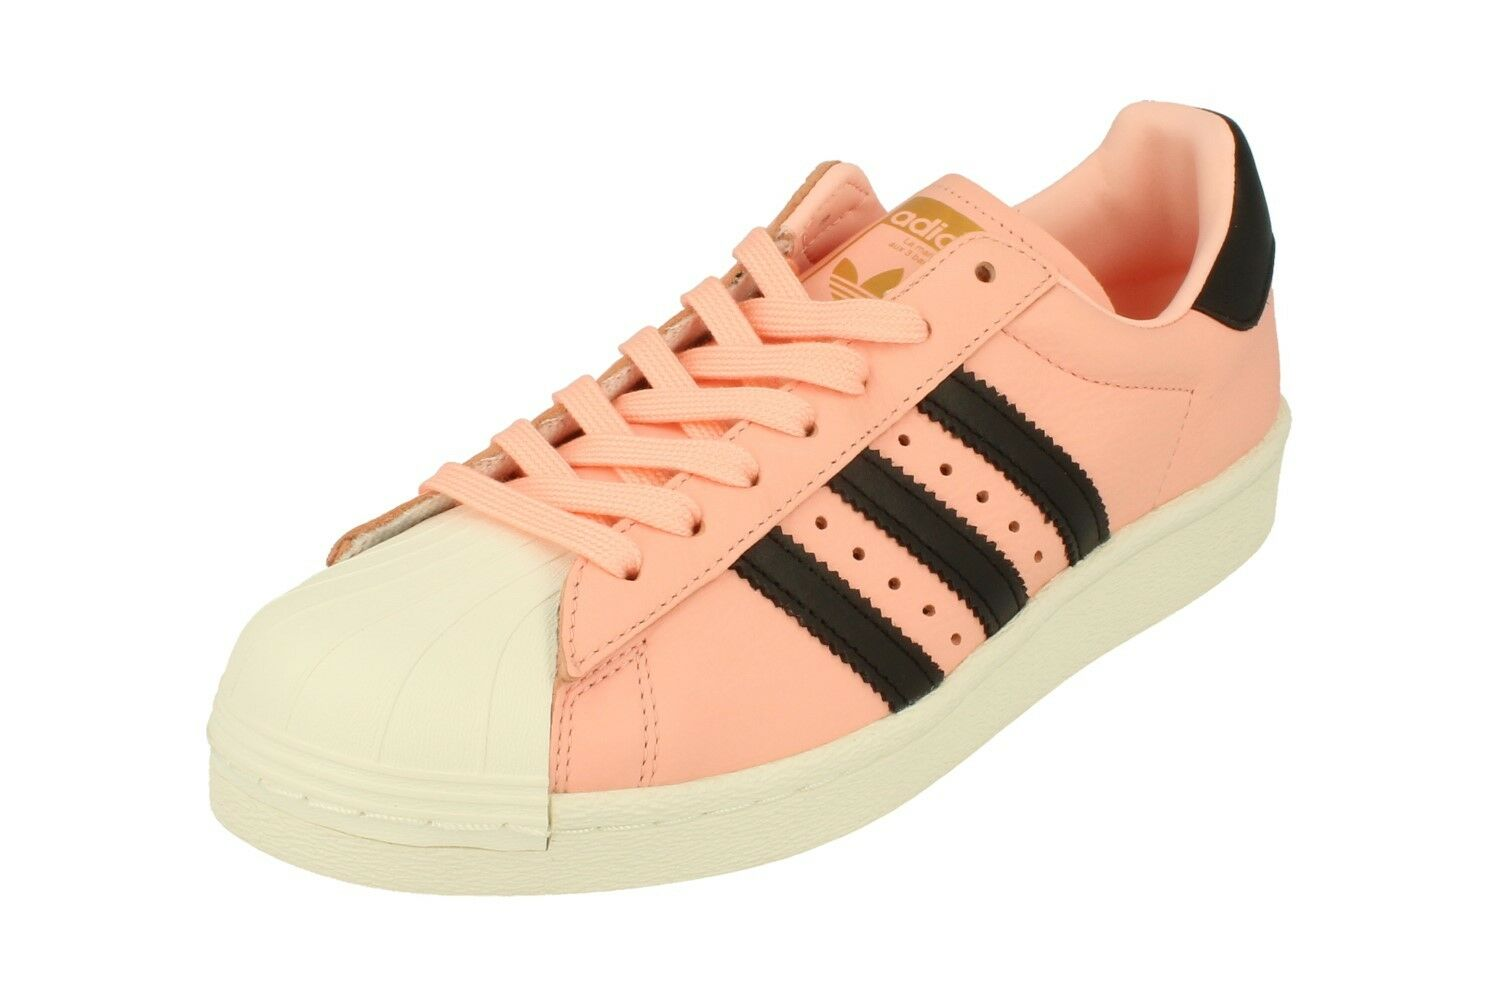 Adidas Originals Superstar Boost Mens Running Trainers Sneakers BB2731